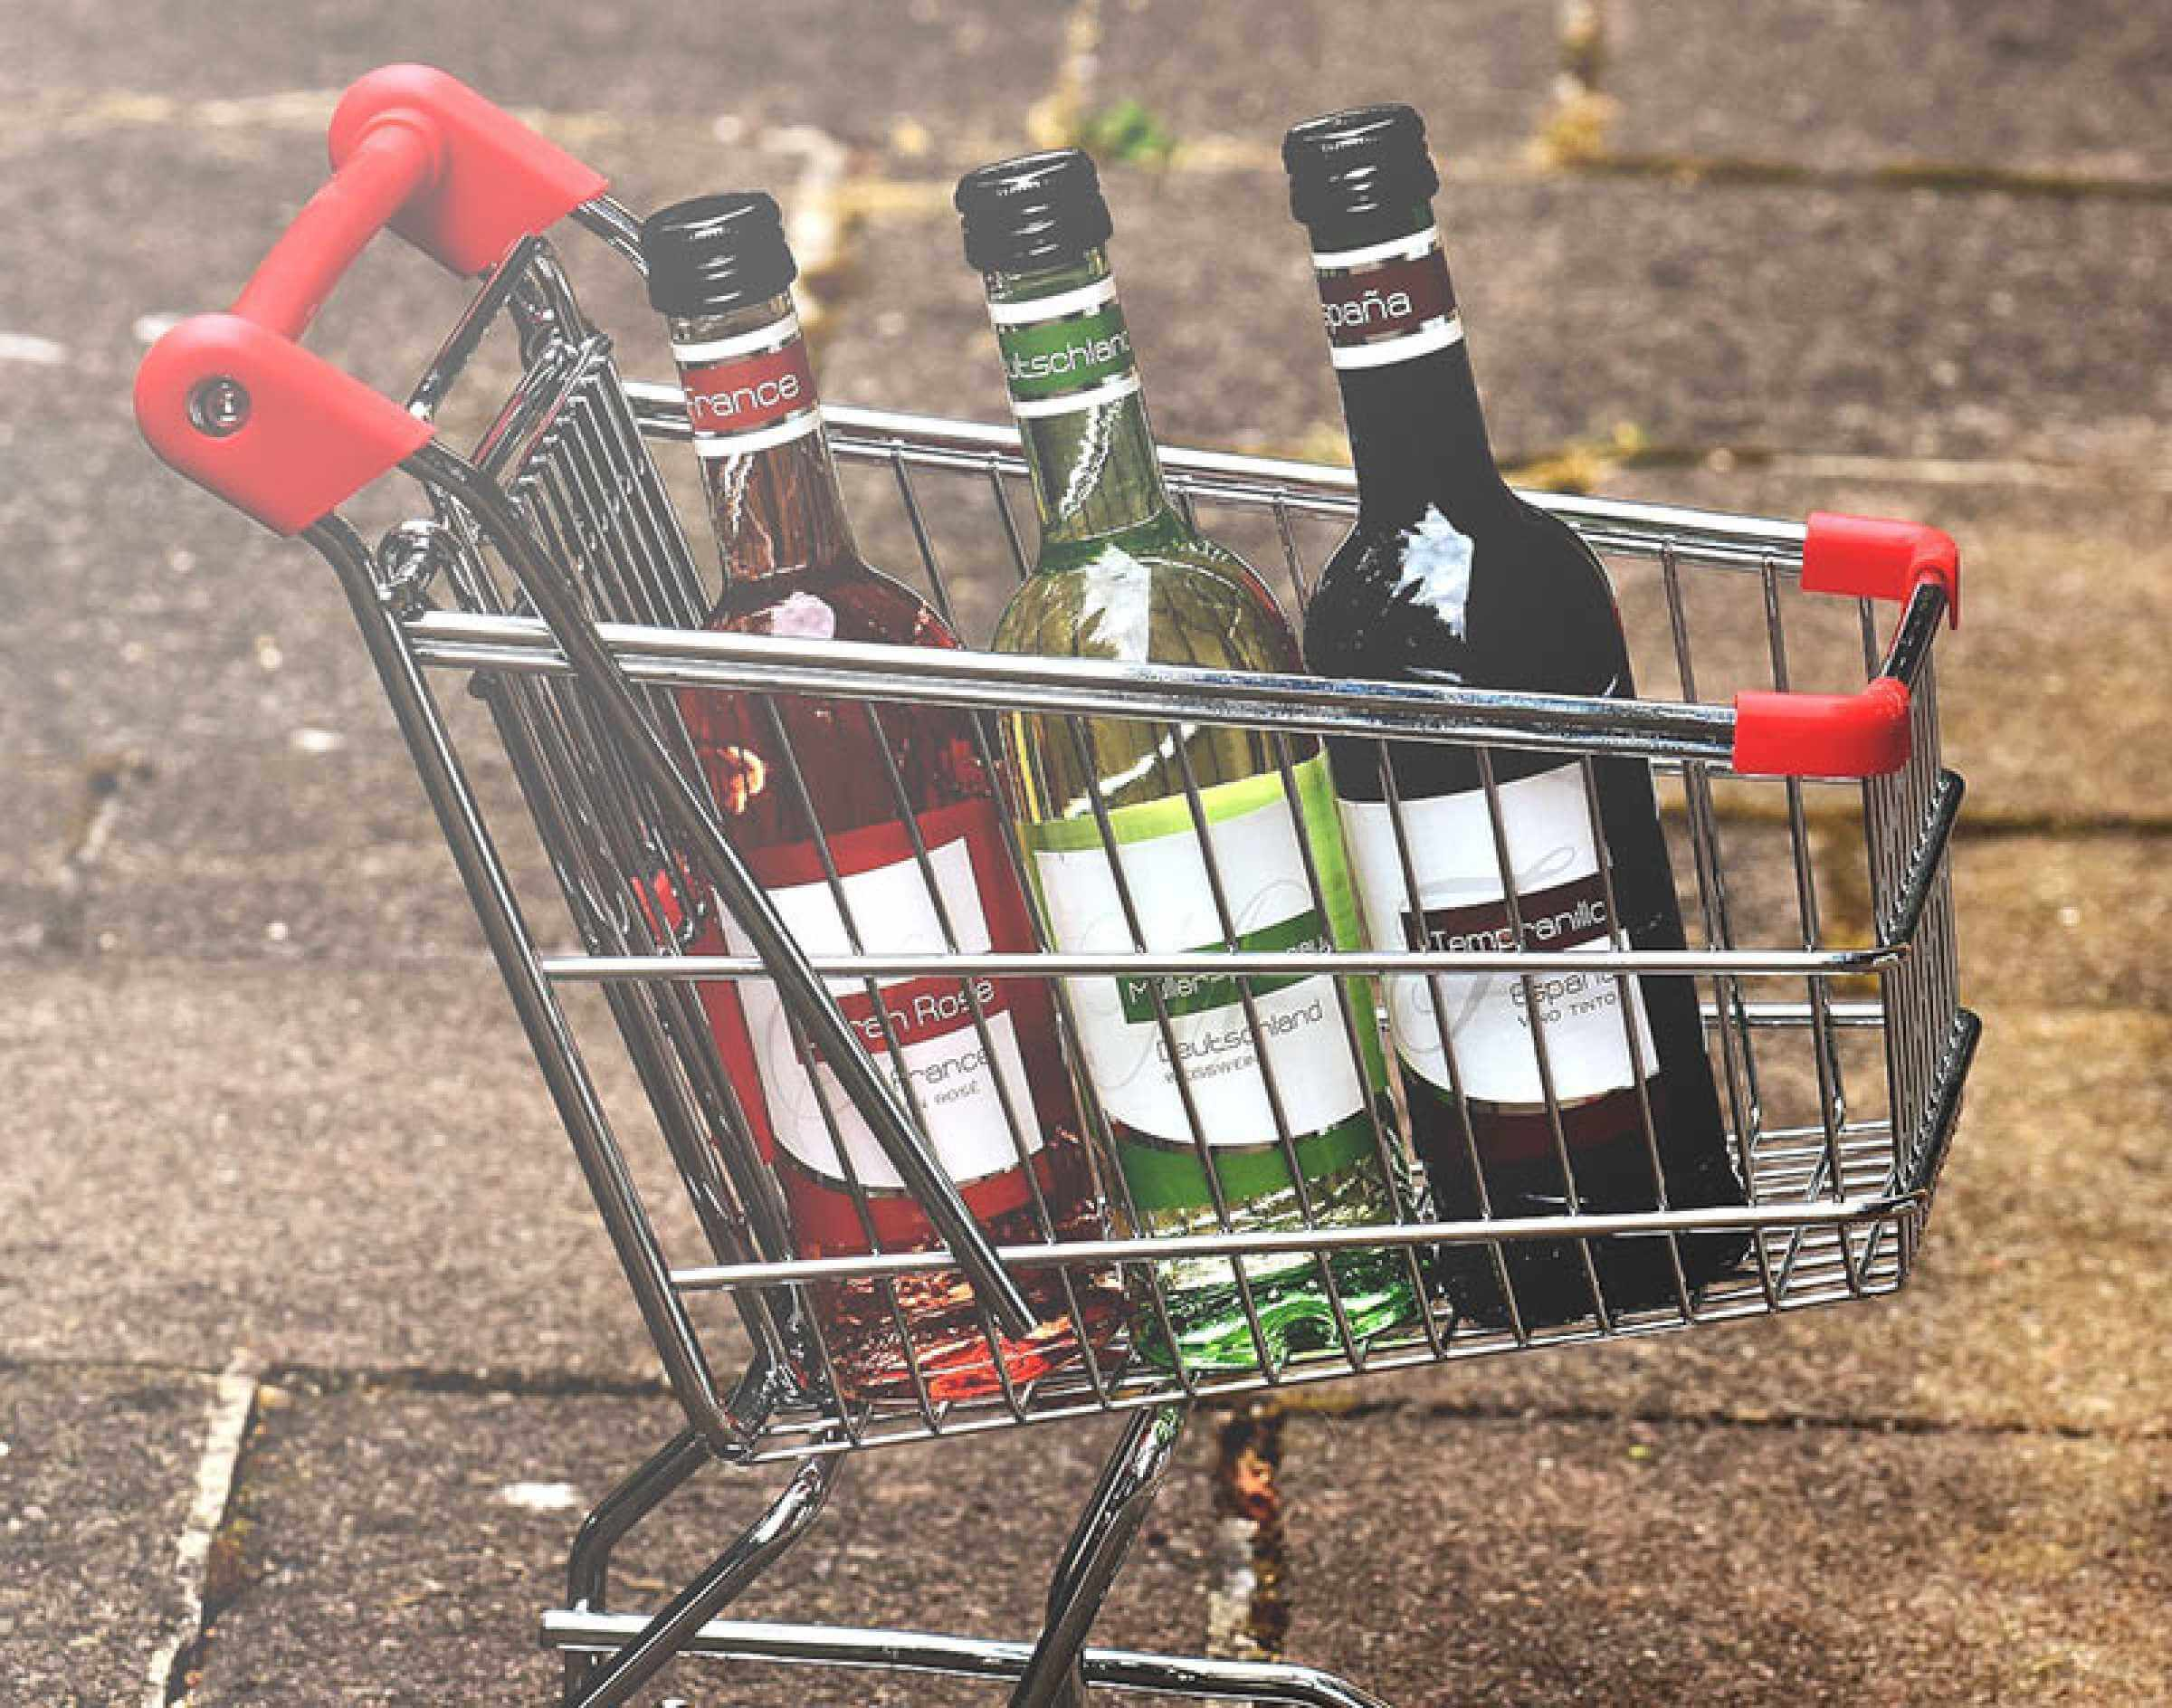 Shopping trolley filled with bottles of wine